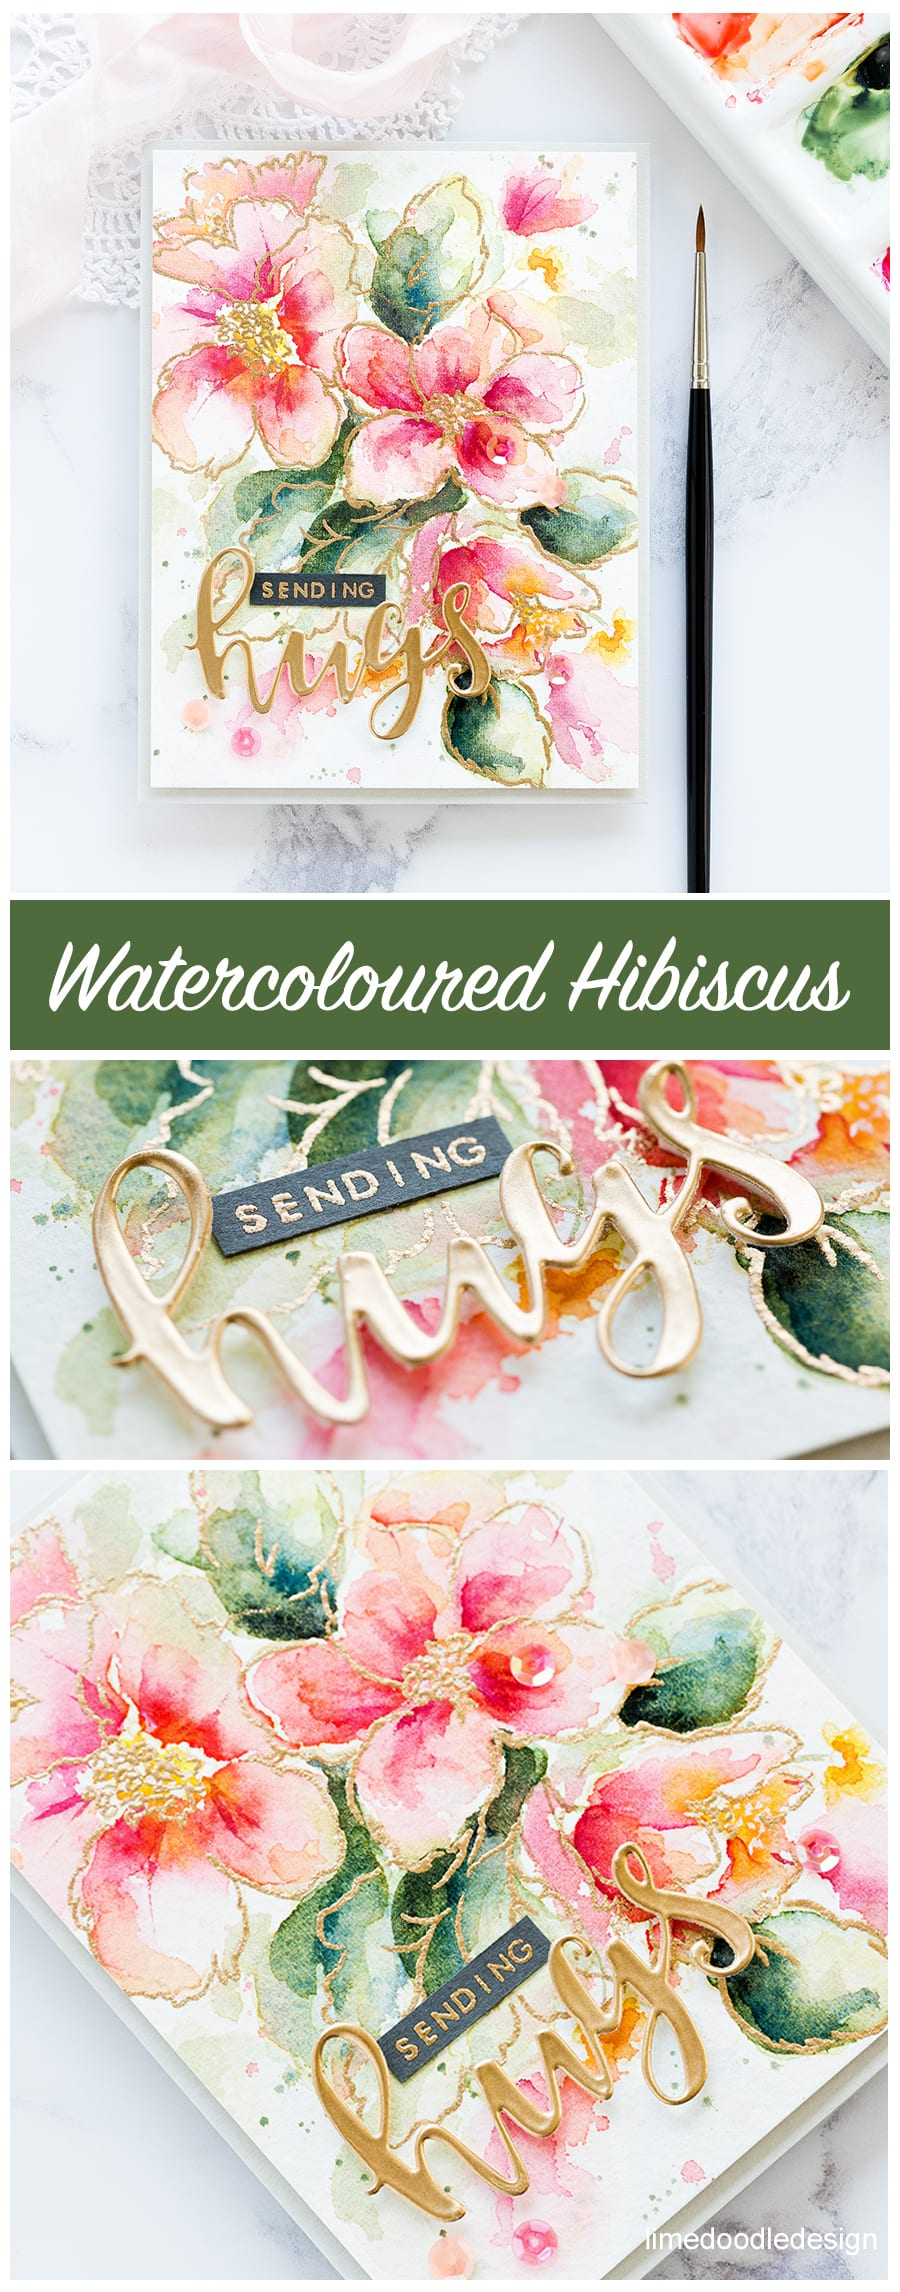 Watercoloured Hibiscus handmade card by Debby Hughes using the Altenew Hibiscus Burst stamp set and Rose Gold embossing powder. Find out more here: https://limedoodledesign.com/2017/10/altenew-october-2017-release-blog-hop-giveaway/